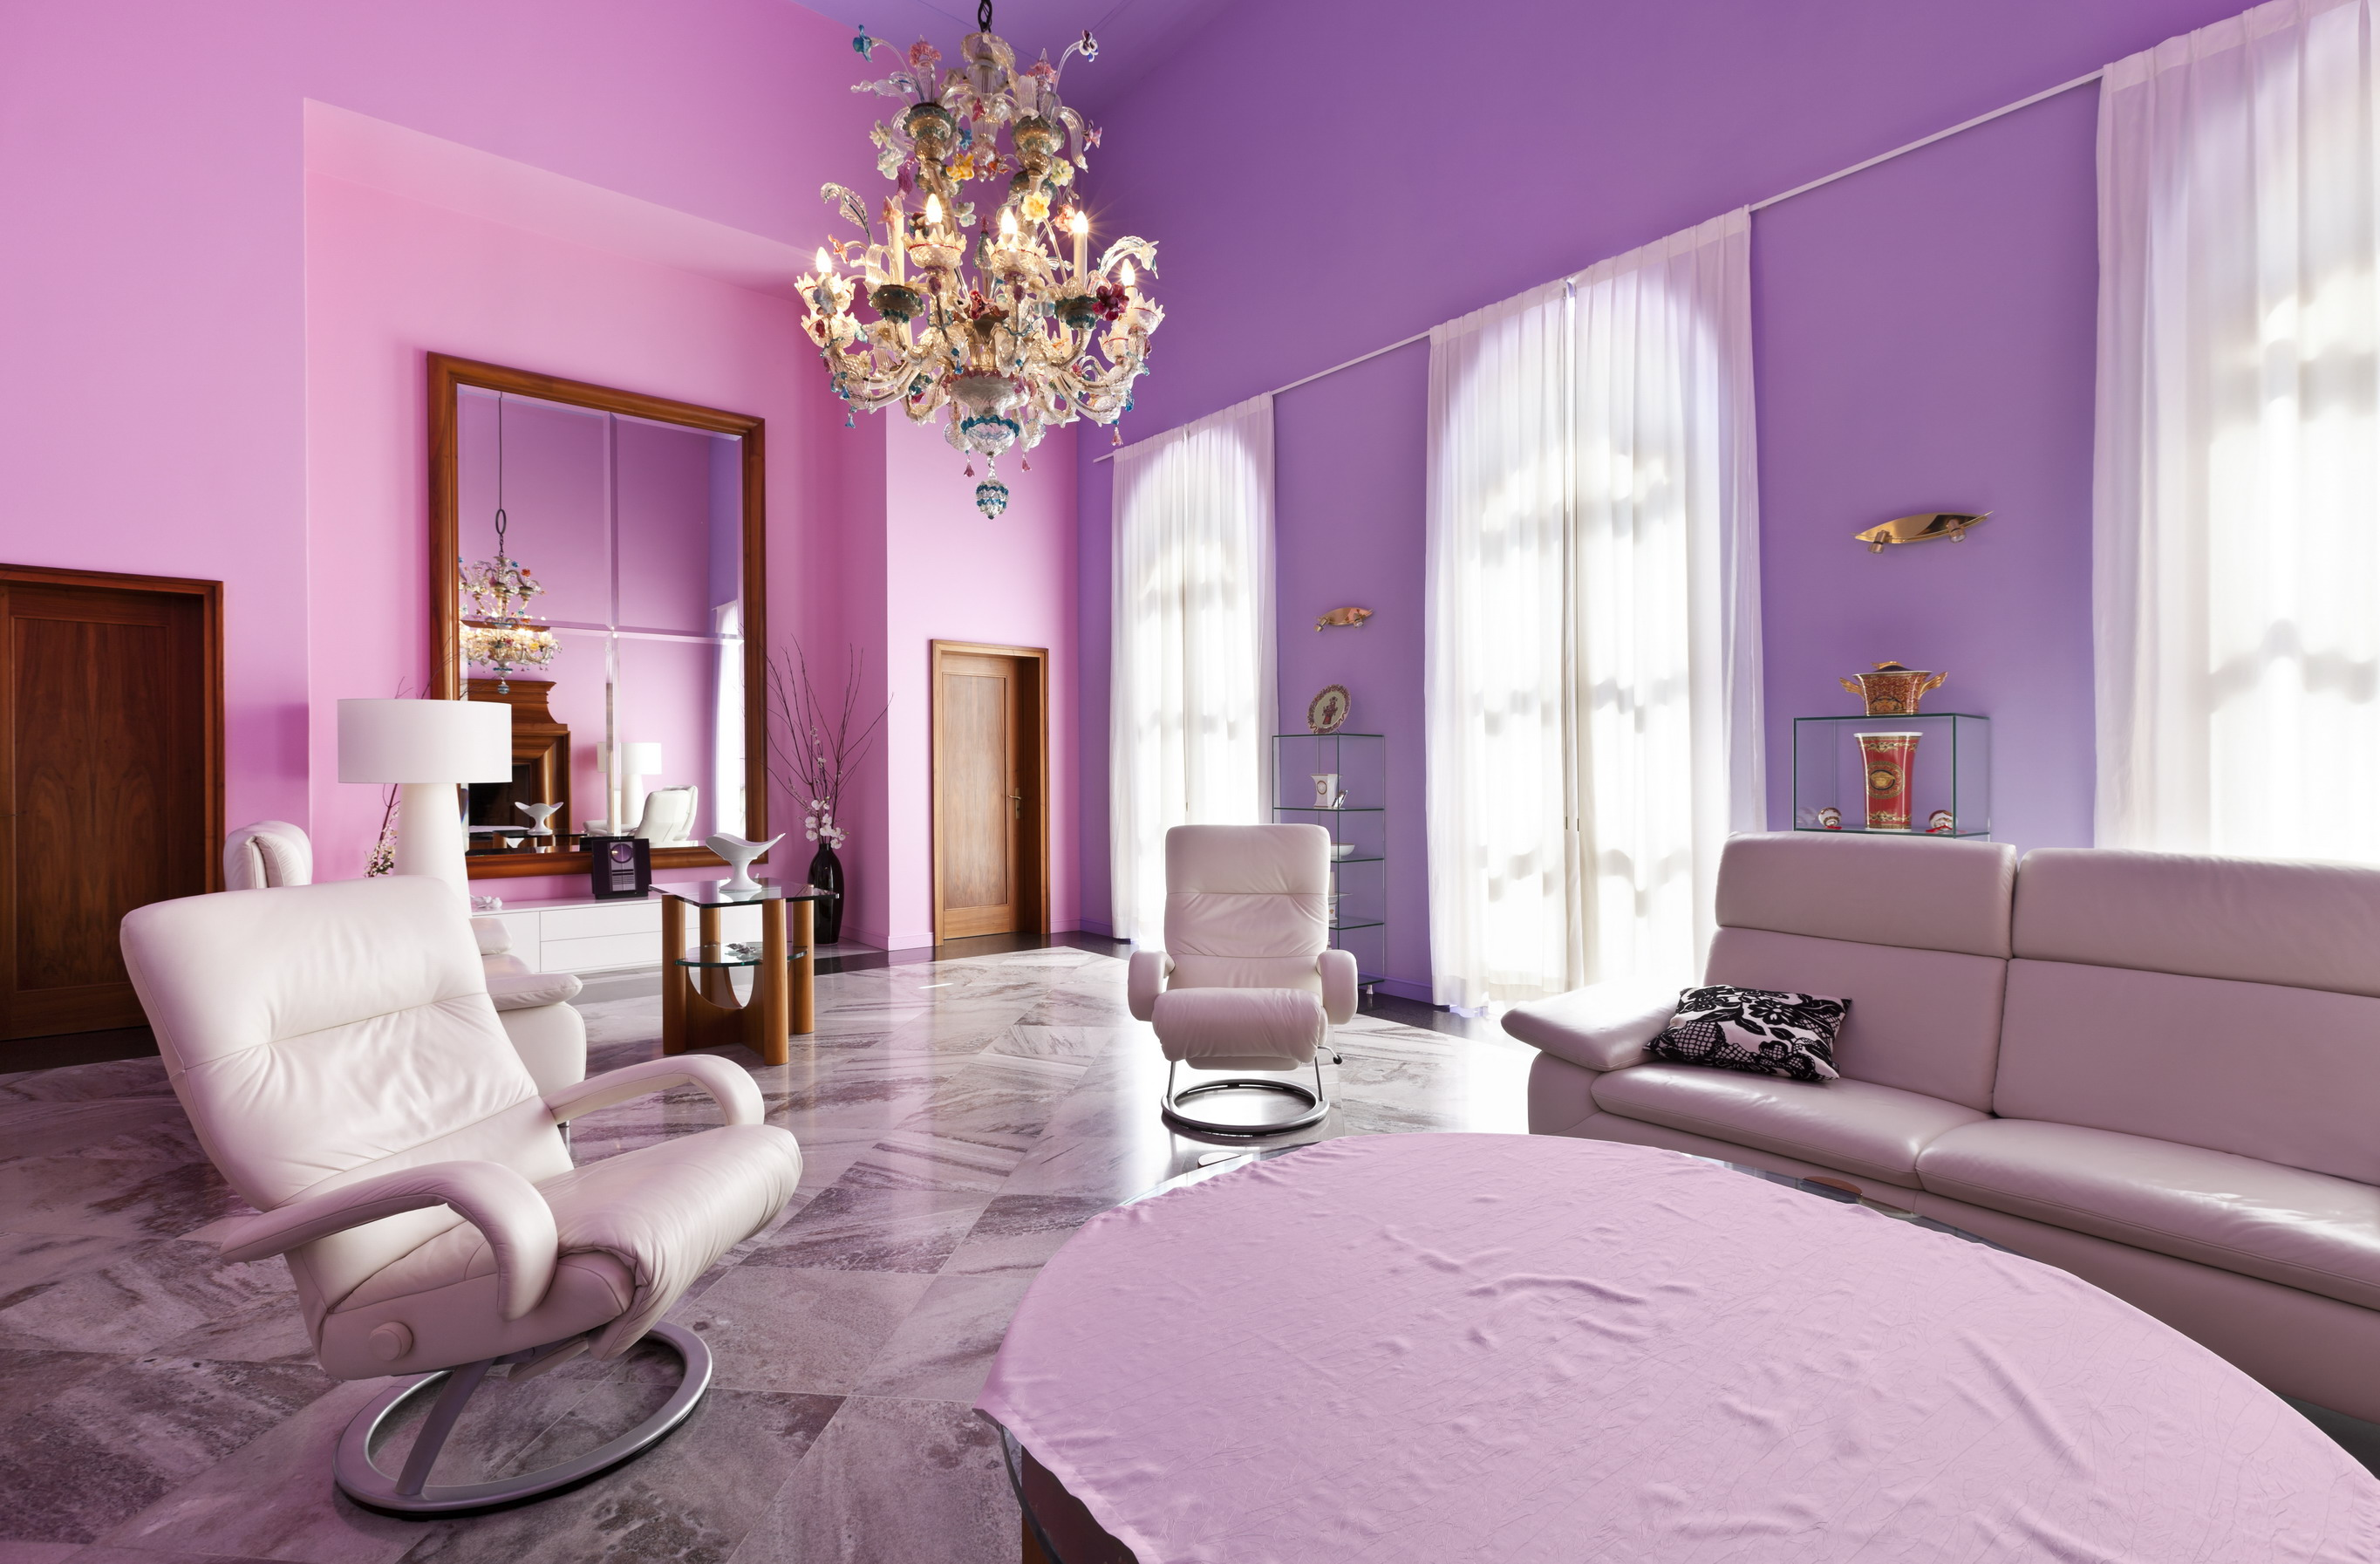 We Select The Curtains Under The Lilac Wallpaper 33 Photos What Color Curtains Fit The Light Lilac Walls